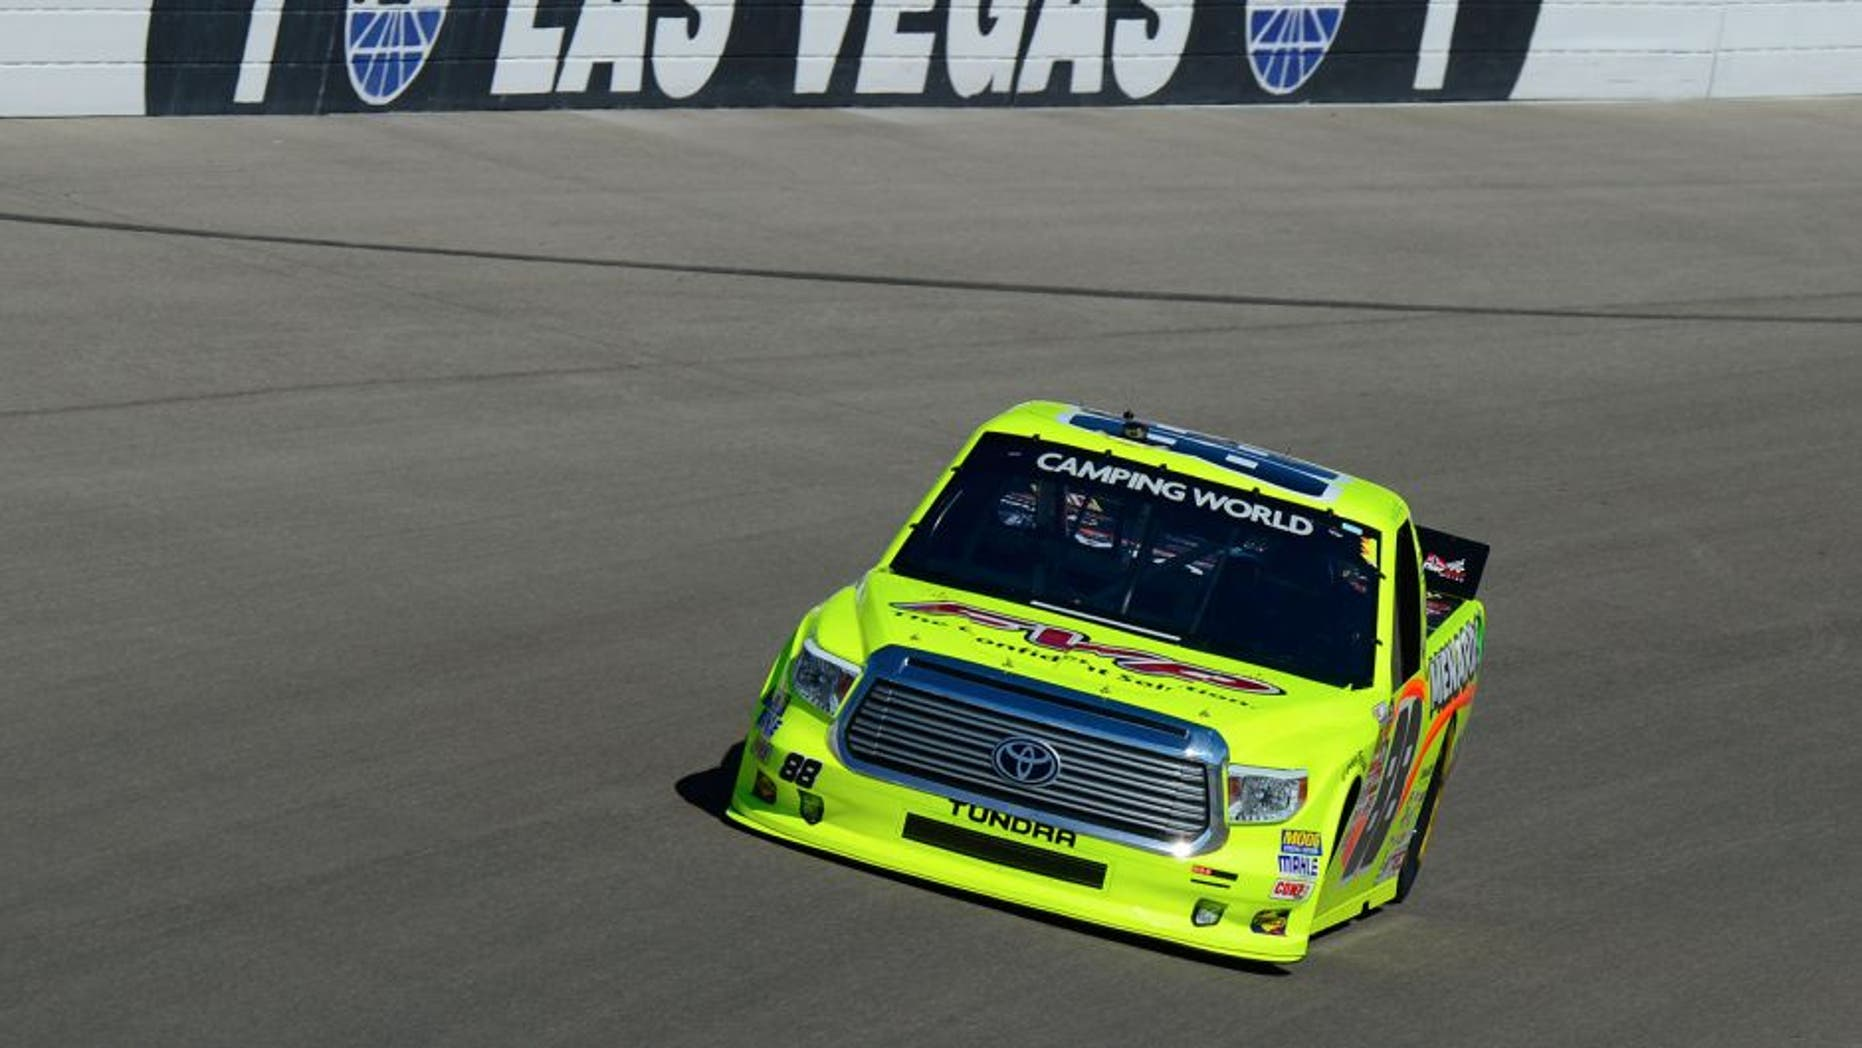 LAS VEGAS, NV - OCTOBER 3: Matt Crafton driver of the #88 FVP/Menards Toyota during practice for the NASCAR Camping World Truck Series Rhino Linings 350 at the Las Vegas Motor Speedway on October 3, 2015 in Las Vegas, Nevada. (Photo by Robert Laberge/NASCAR via Getty Images)